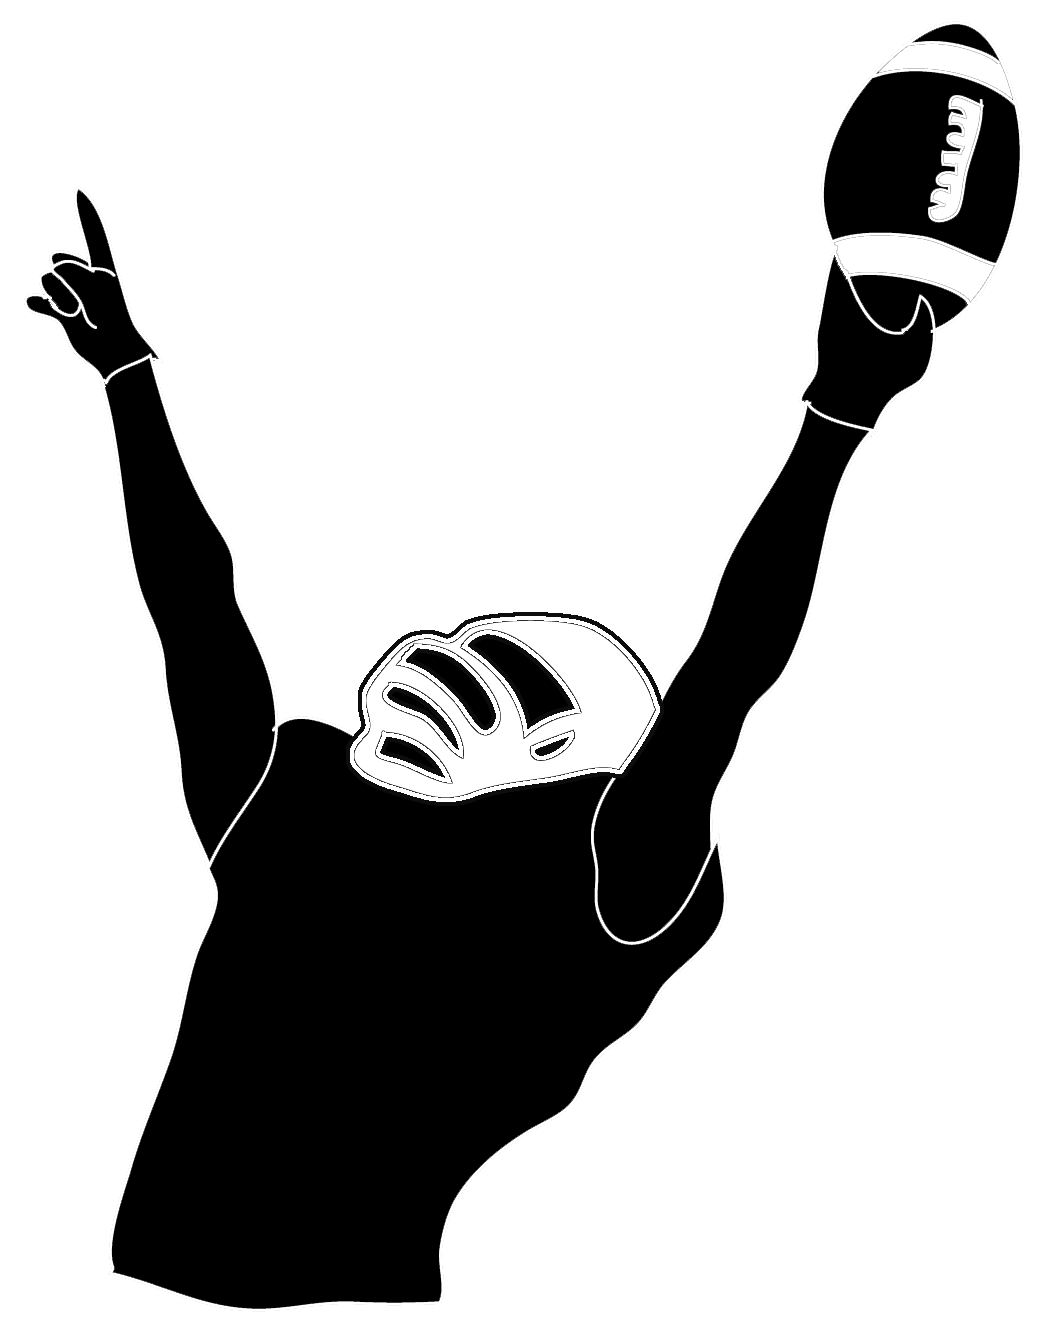 Cheer drawing football player. Victory vinyl projects pinterest